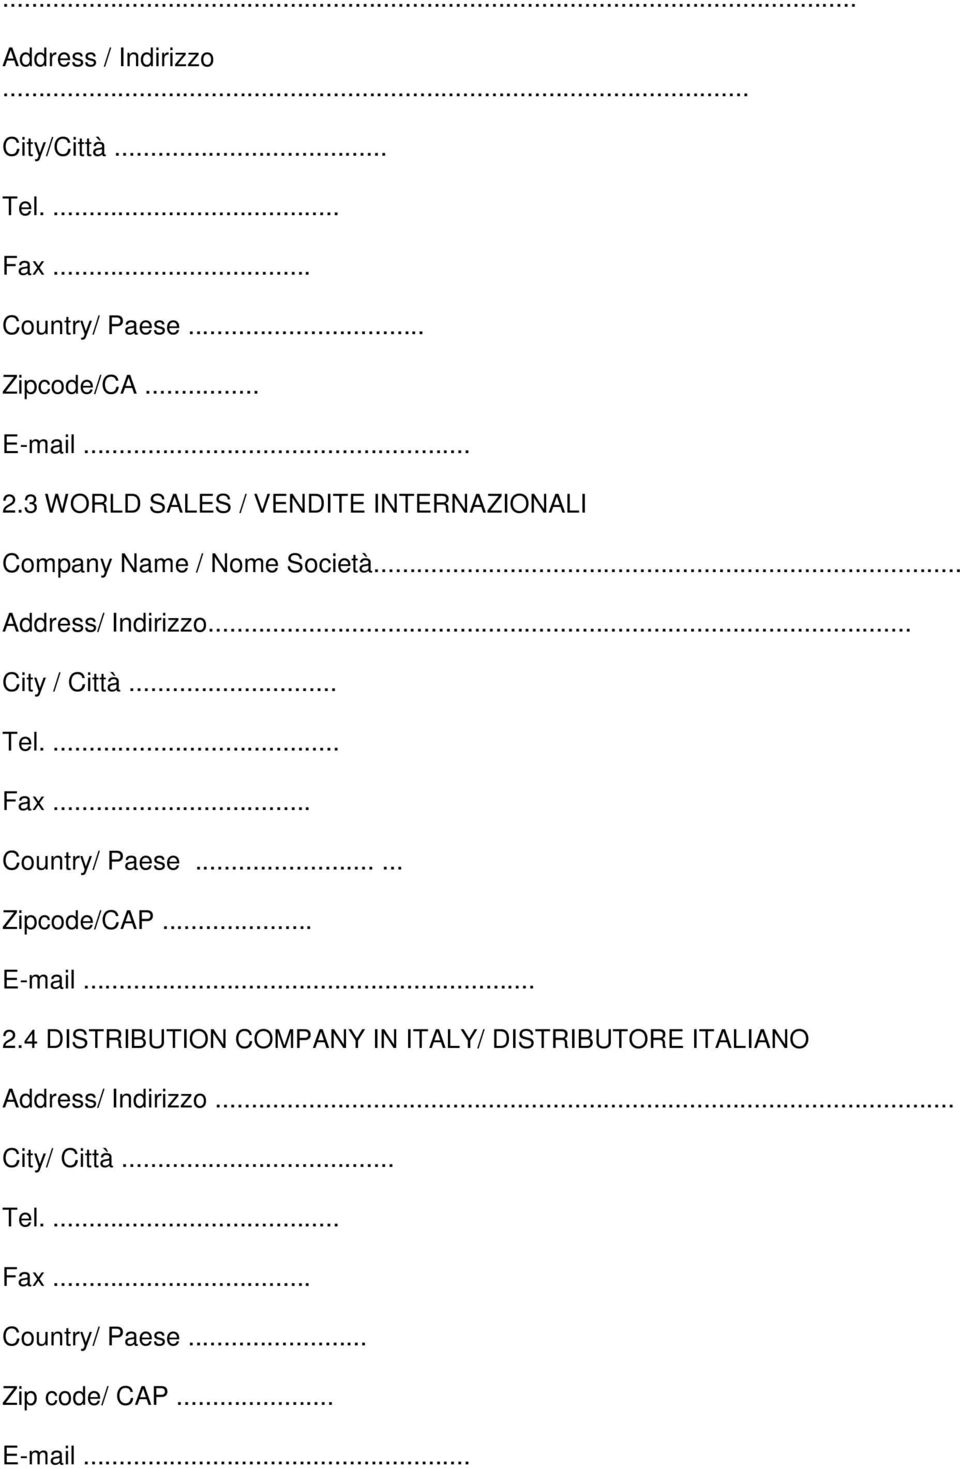 Città Country/ Paese Zipcode/CAP E-mail 24 DISTRIBUTION COMPANY IN ITALY/